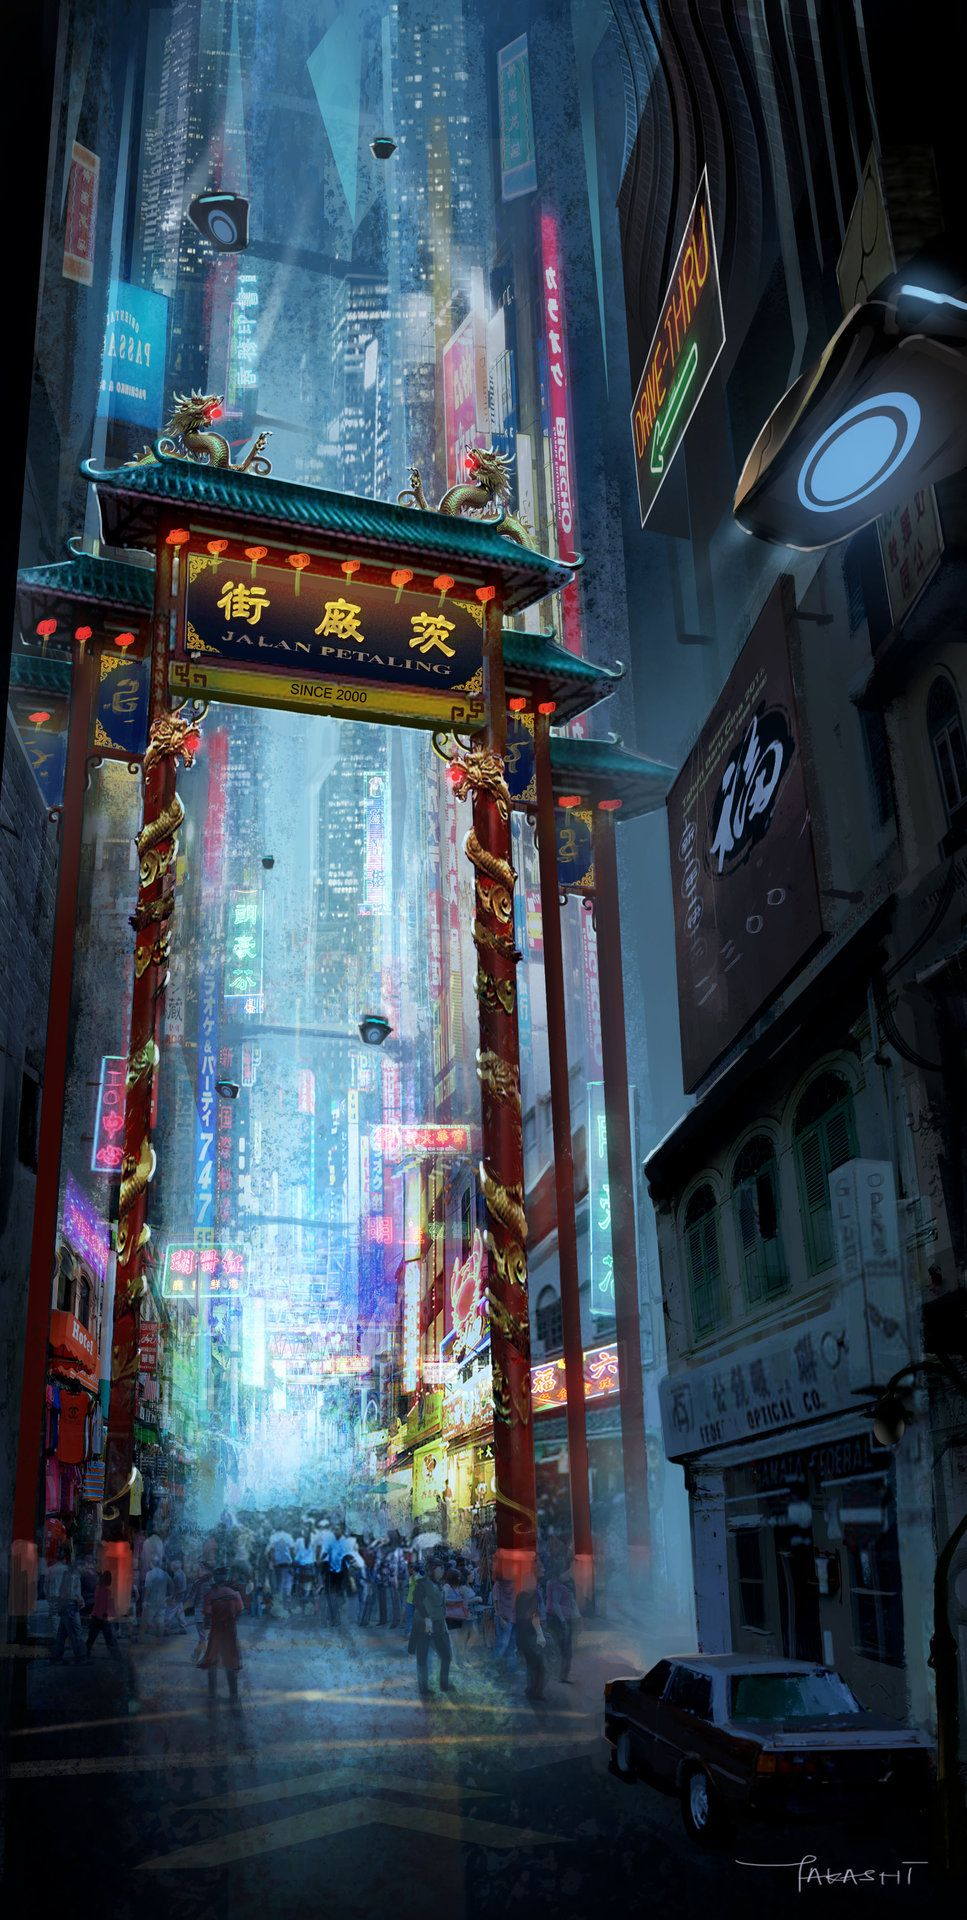 Fragments Of A Hologram Dystopia Anime Futuristic City